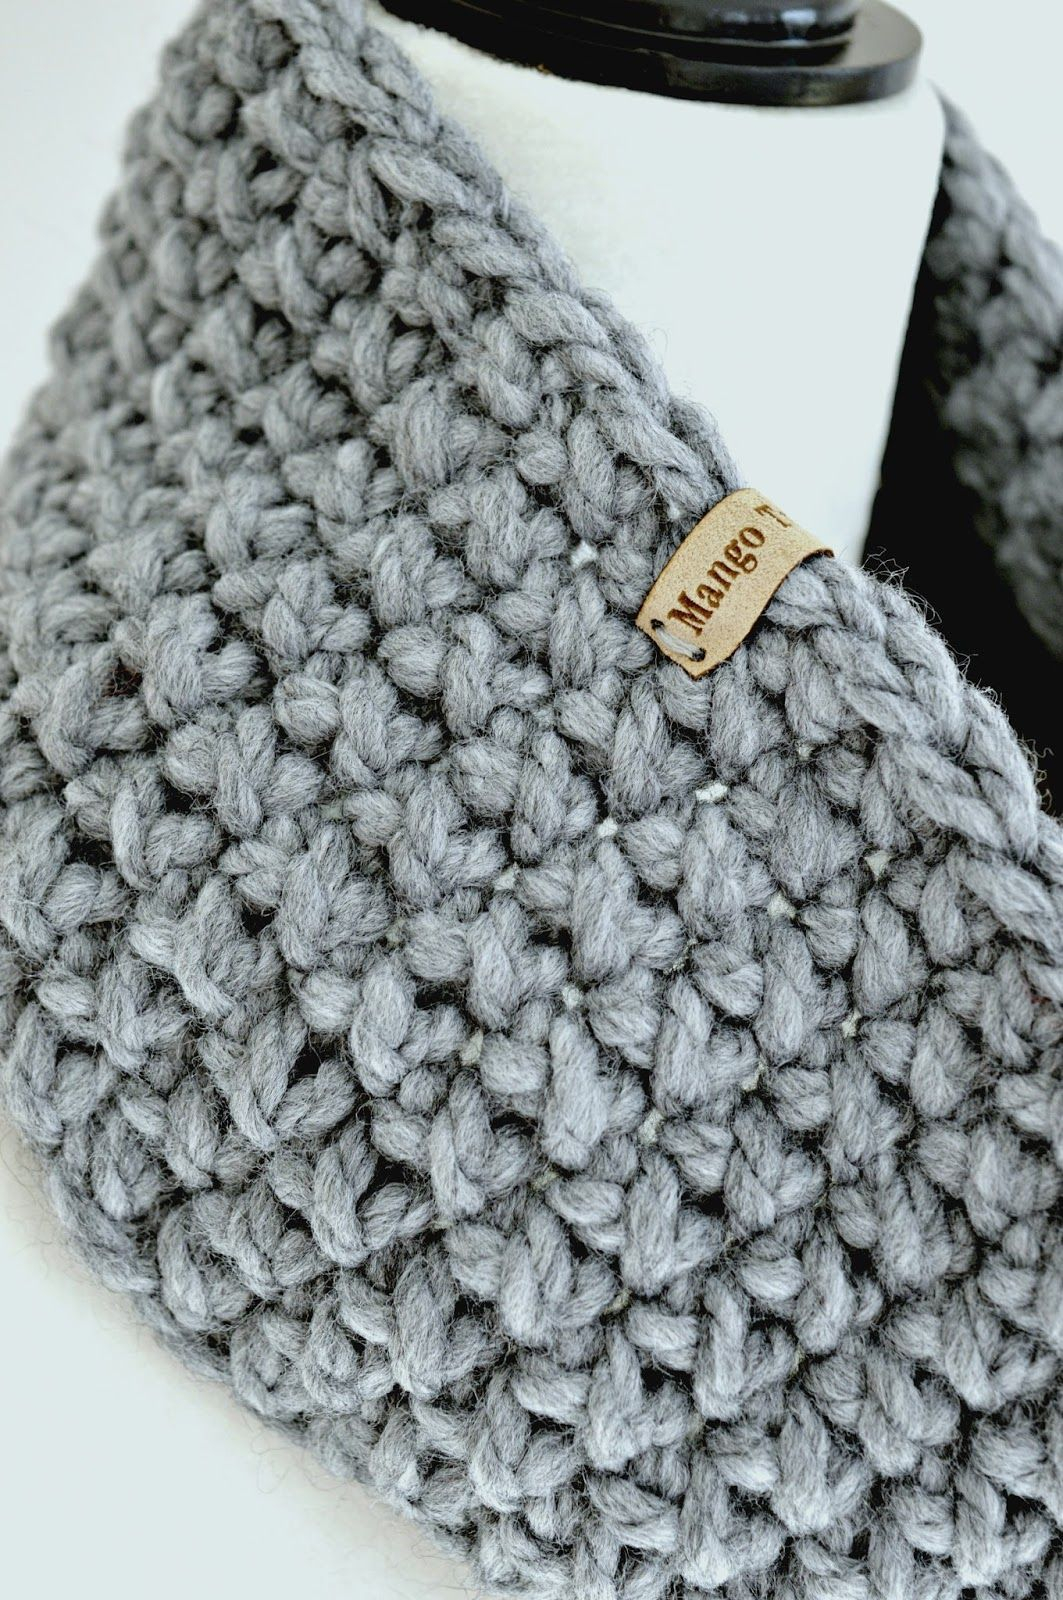 Best Products to Make with the Chunky Yarn Crochet Pattern Super Bulky Yarn Crochet Patterns Mincifinefr